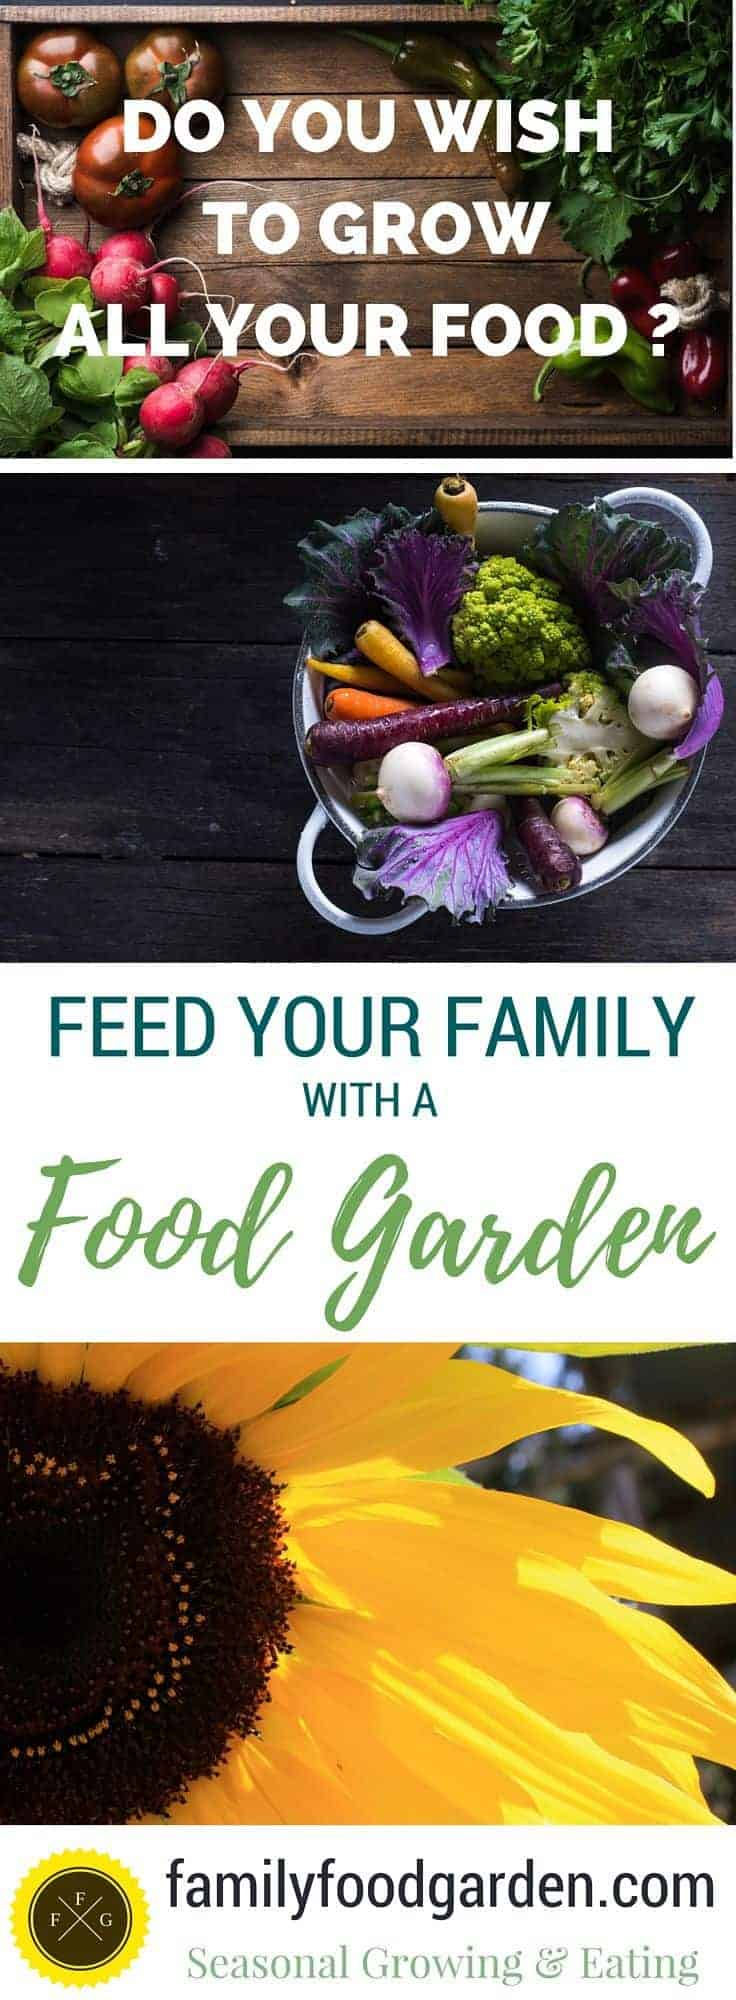 Inspiration for growing food on a large scale for your family